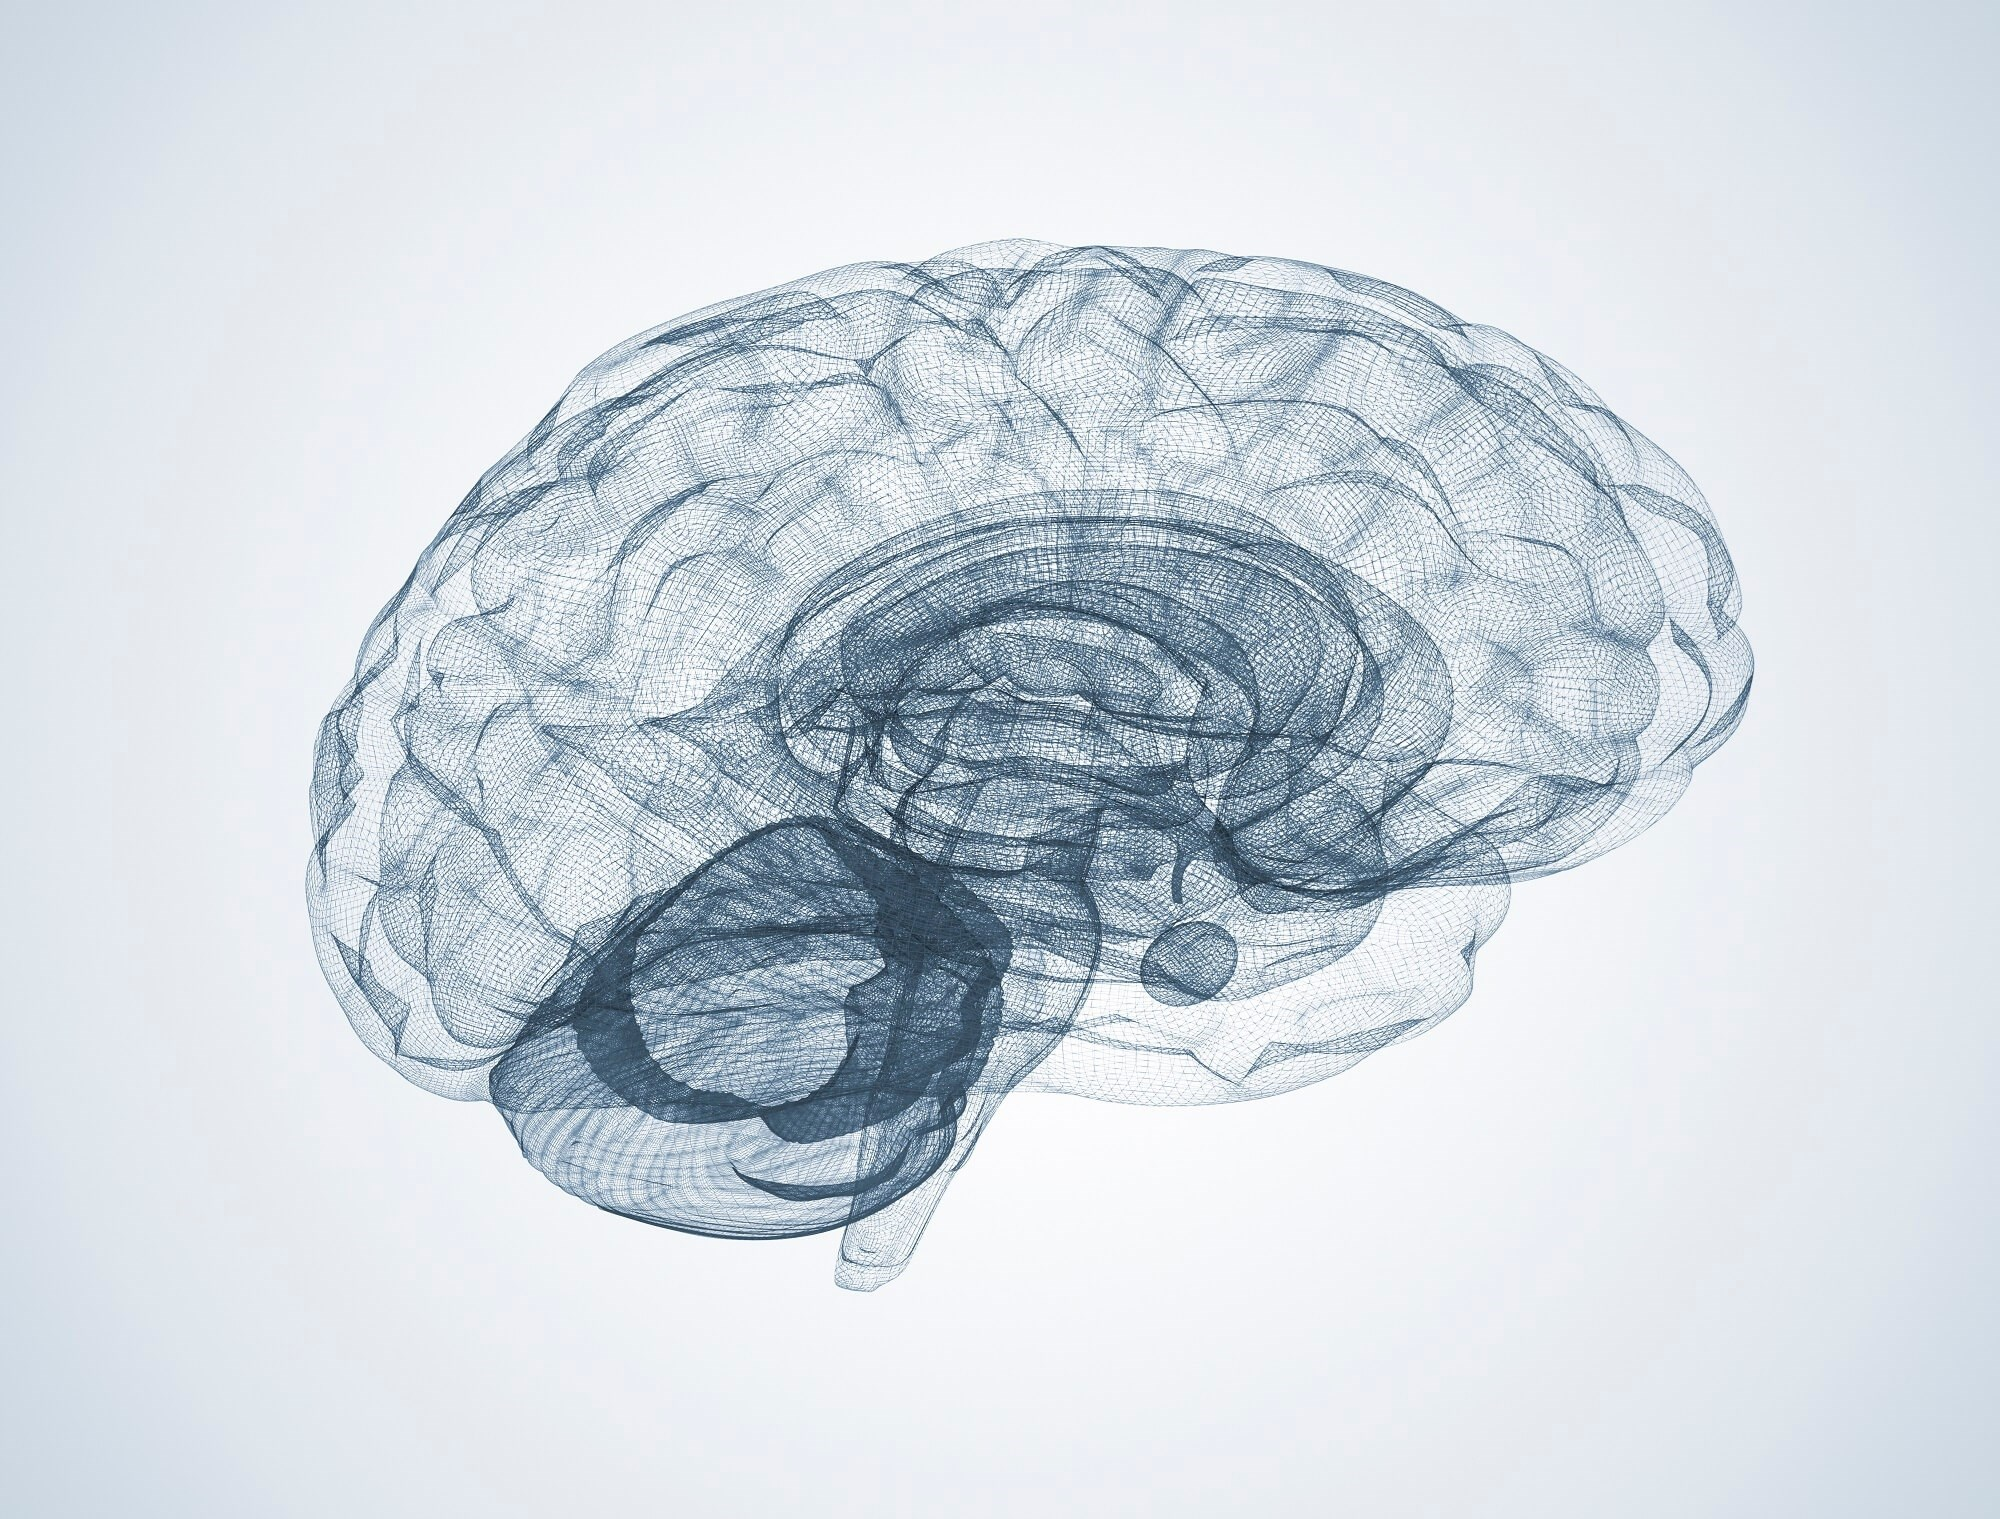 Obesity Linked to Lower Gray Matter Brain Volume